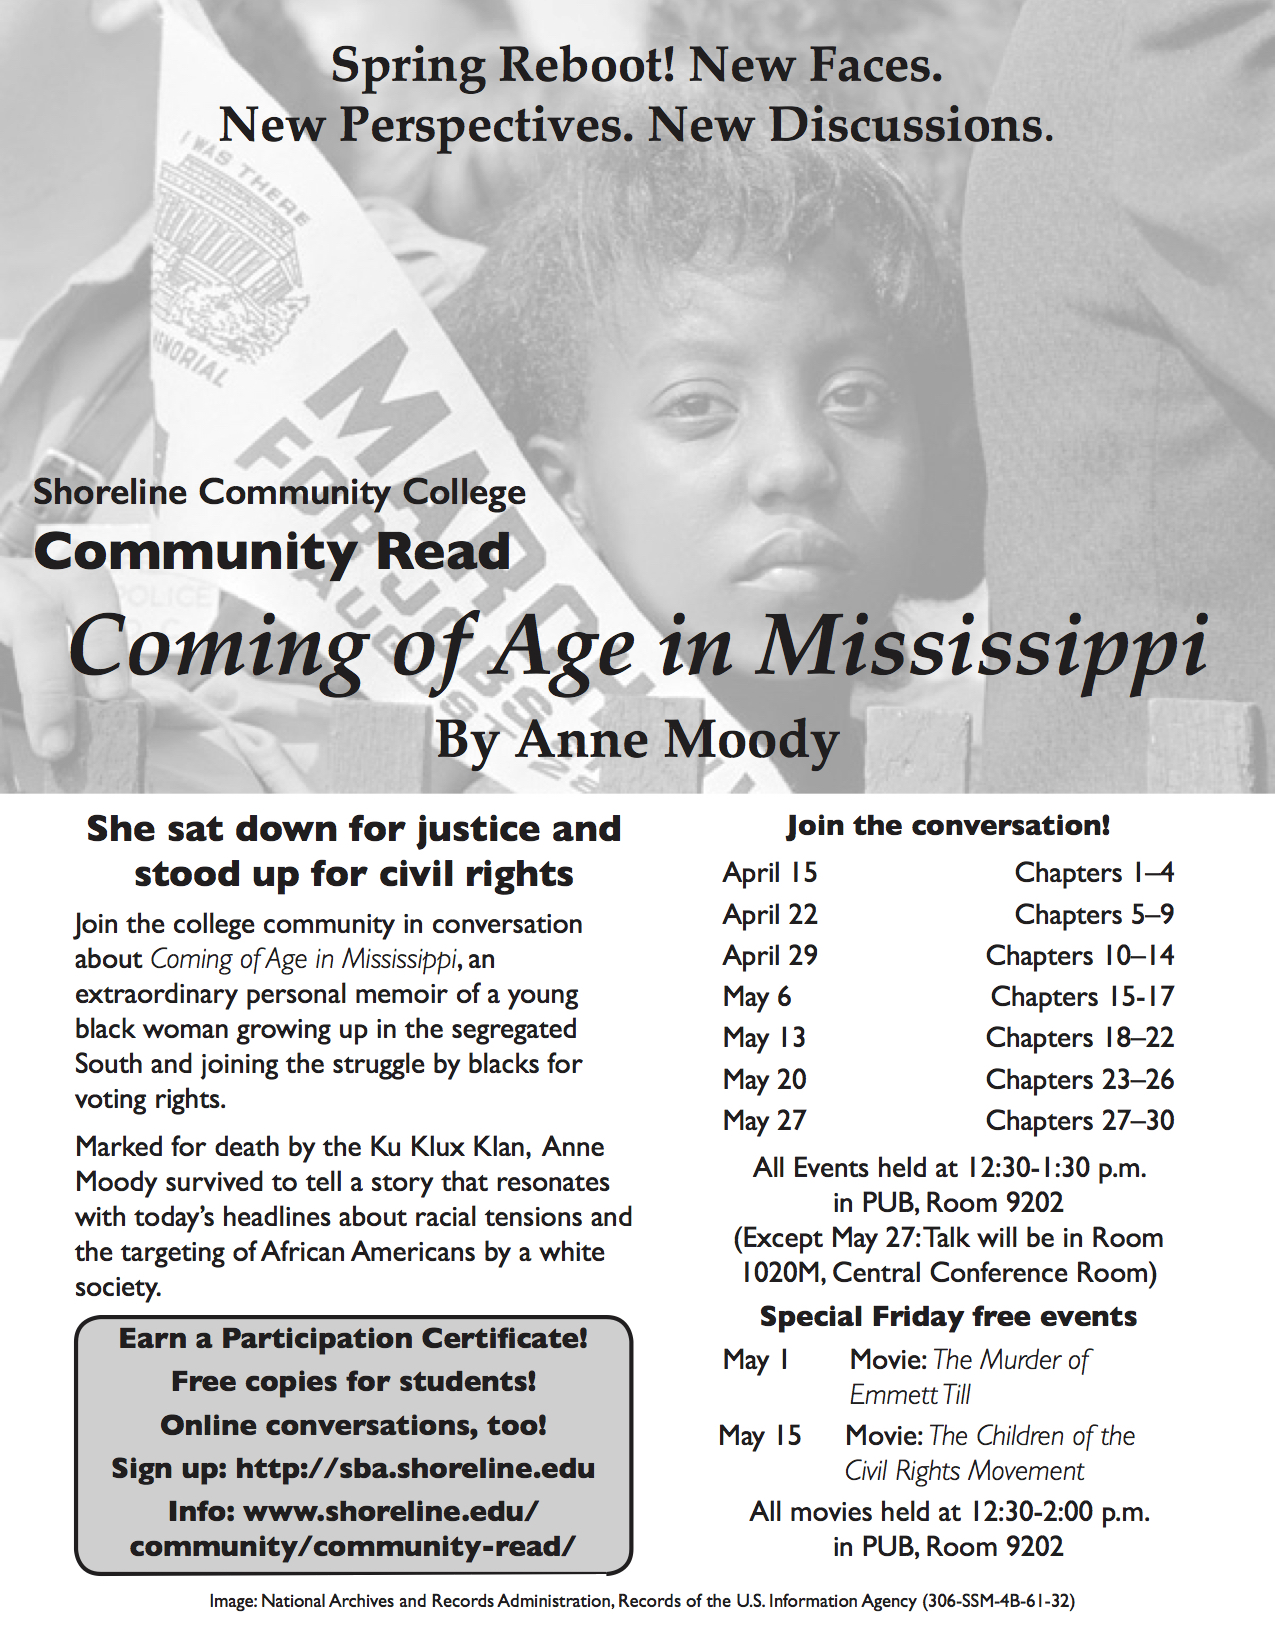 an analysis of the civil rights movement in coming of age in mississippi by anne moody Guidelines for paper historical analysis of the civil rights movement sources for this paper: anne moody, coming of age in mississippi (required text).